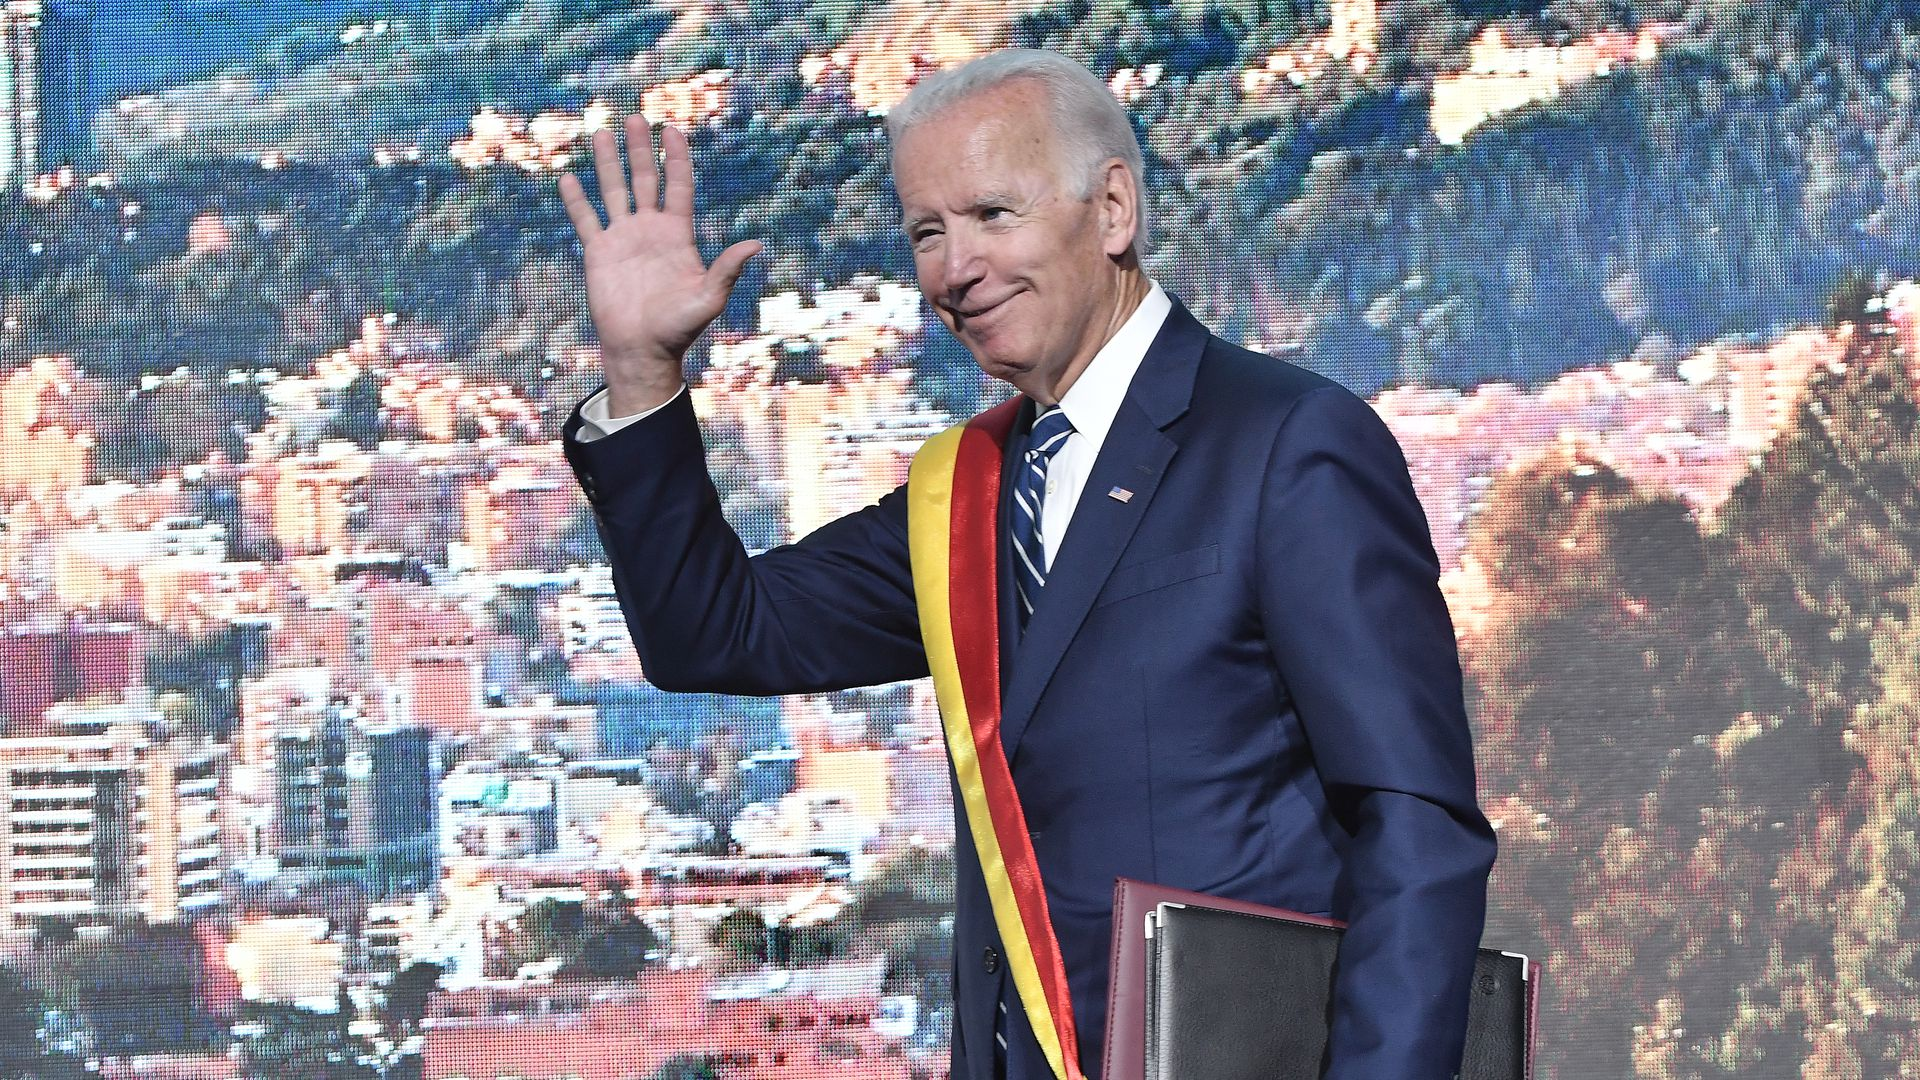 Joe Biden waving.